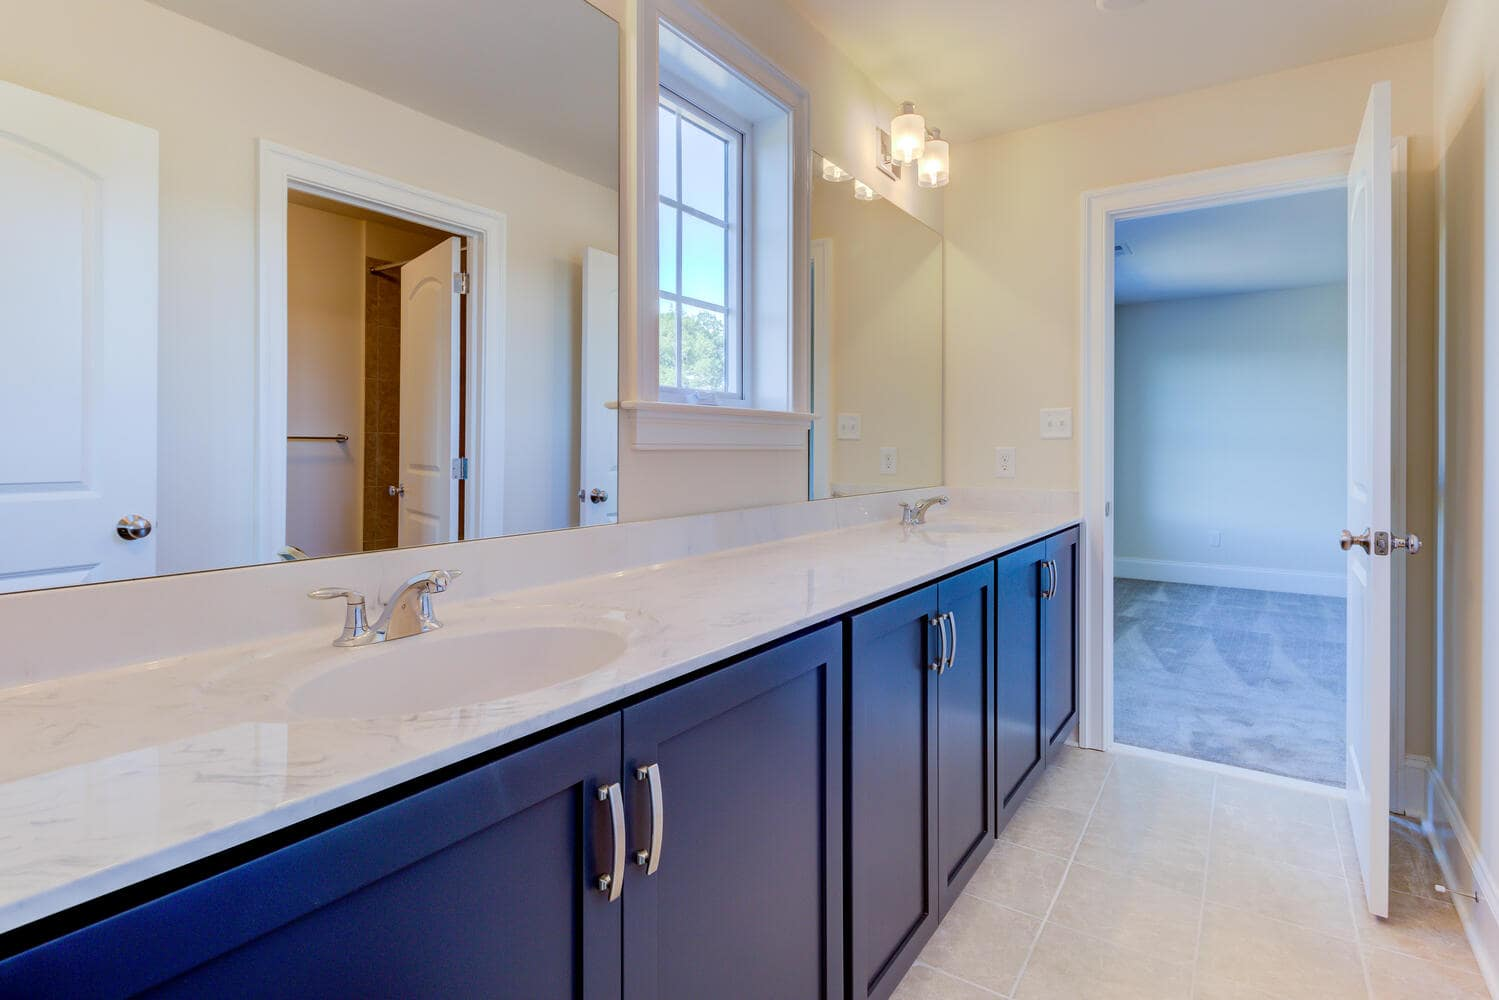 Double vanity bathroom in a new home from Bentley Homes.